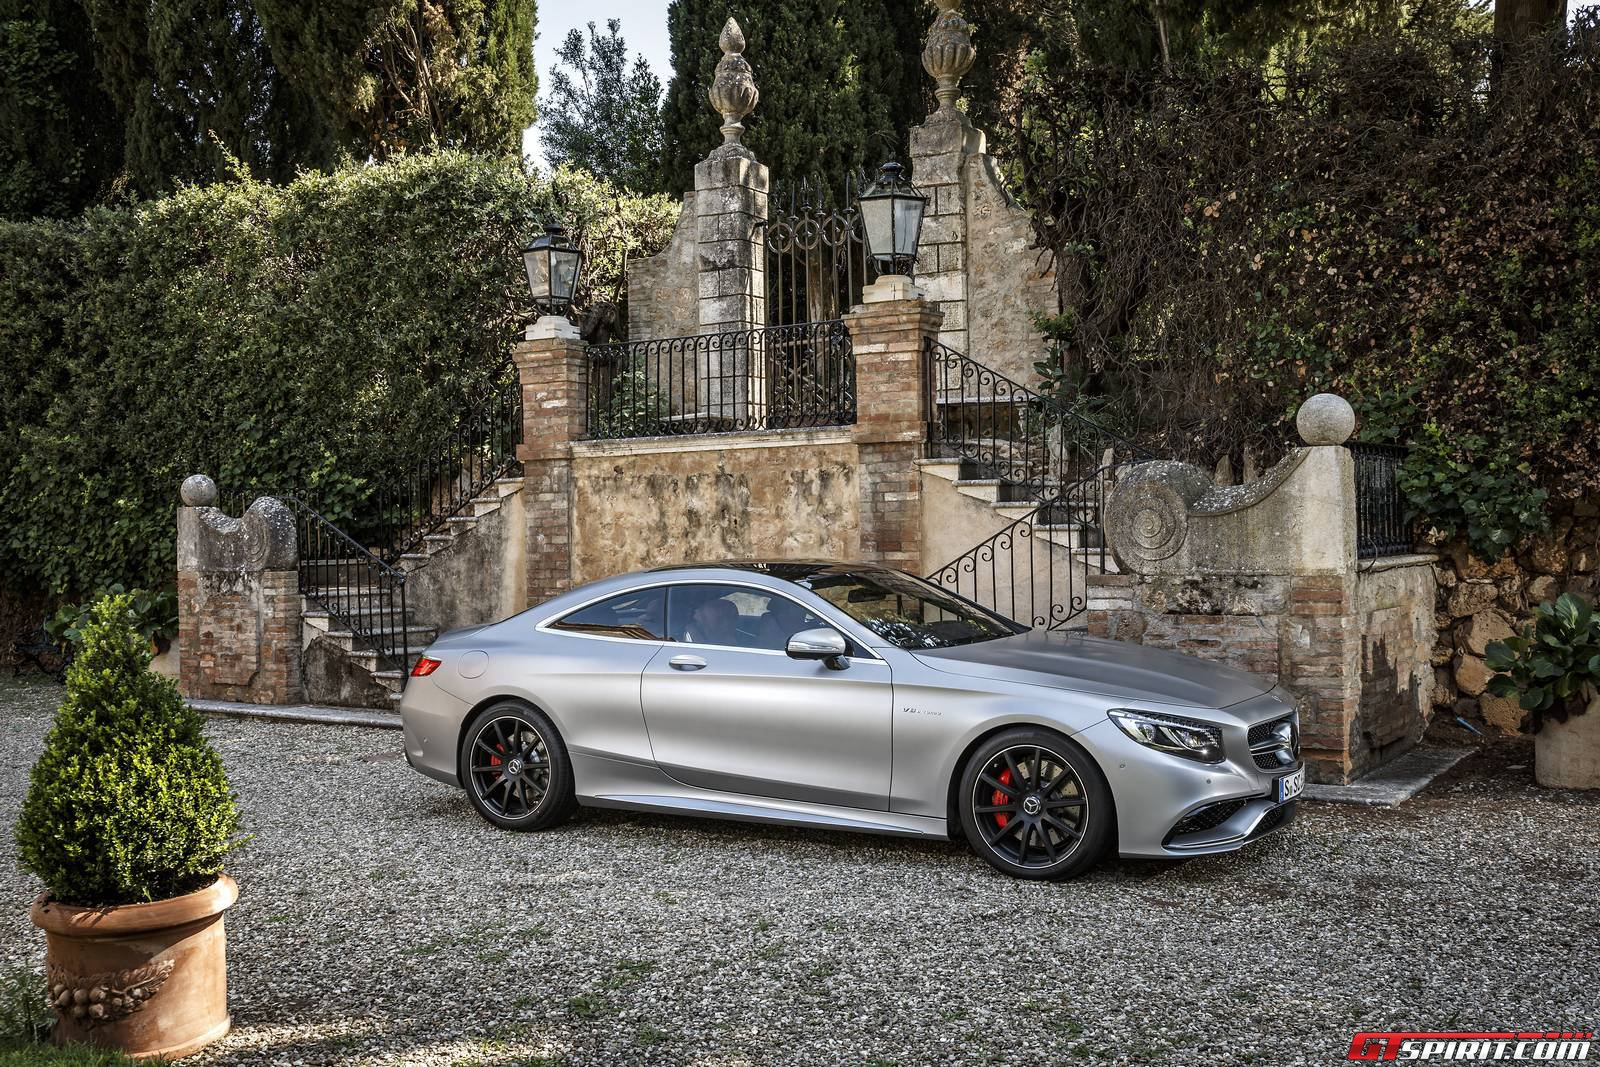 2015 MercedesBenz S500  S63 AMG Coupe Review  GTspirit